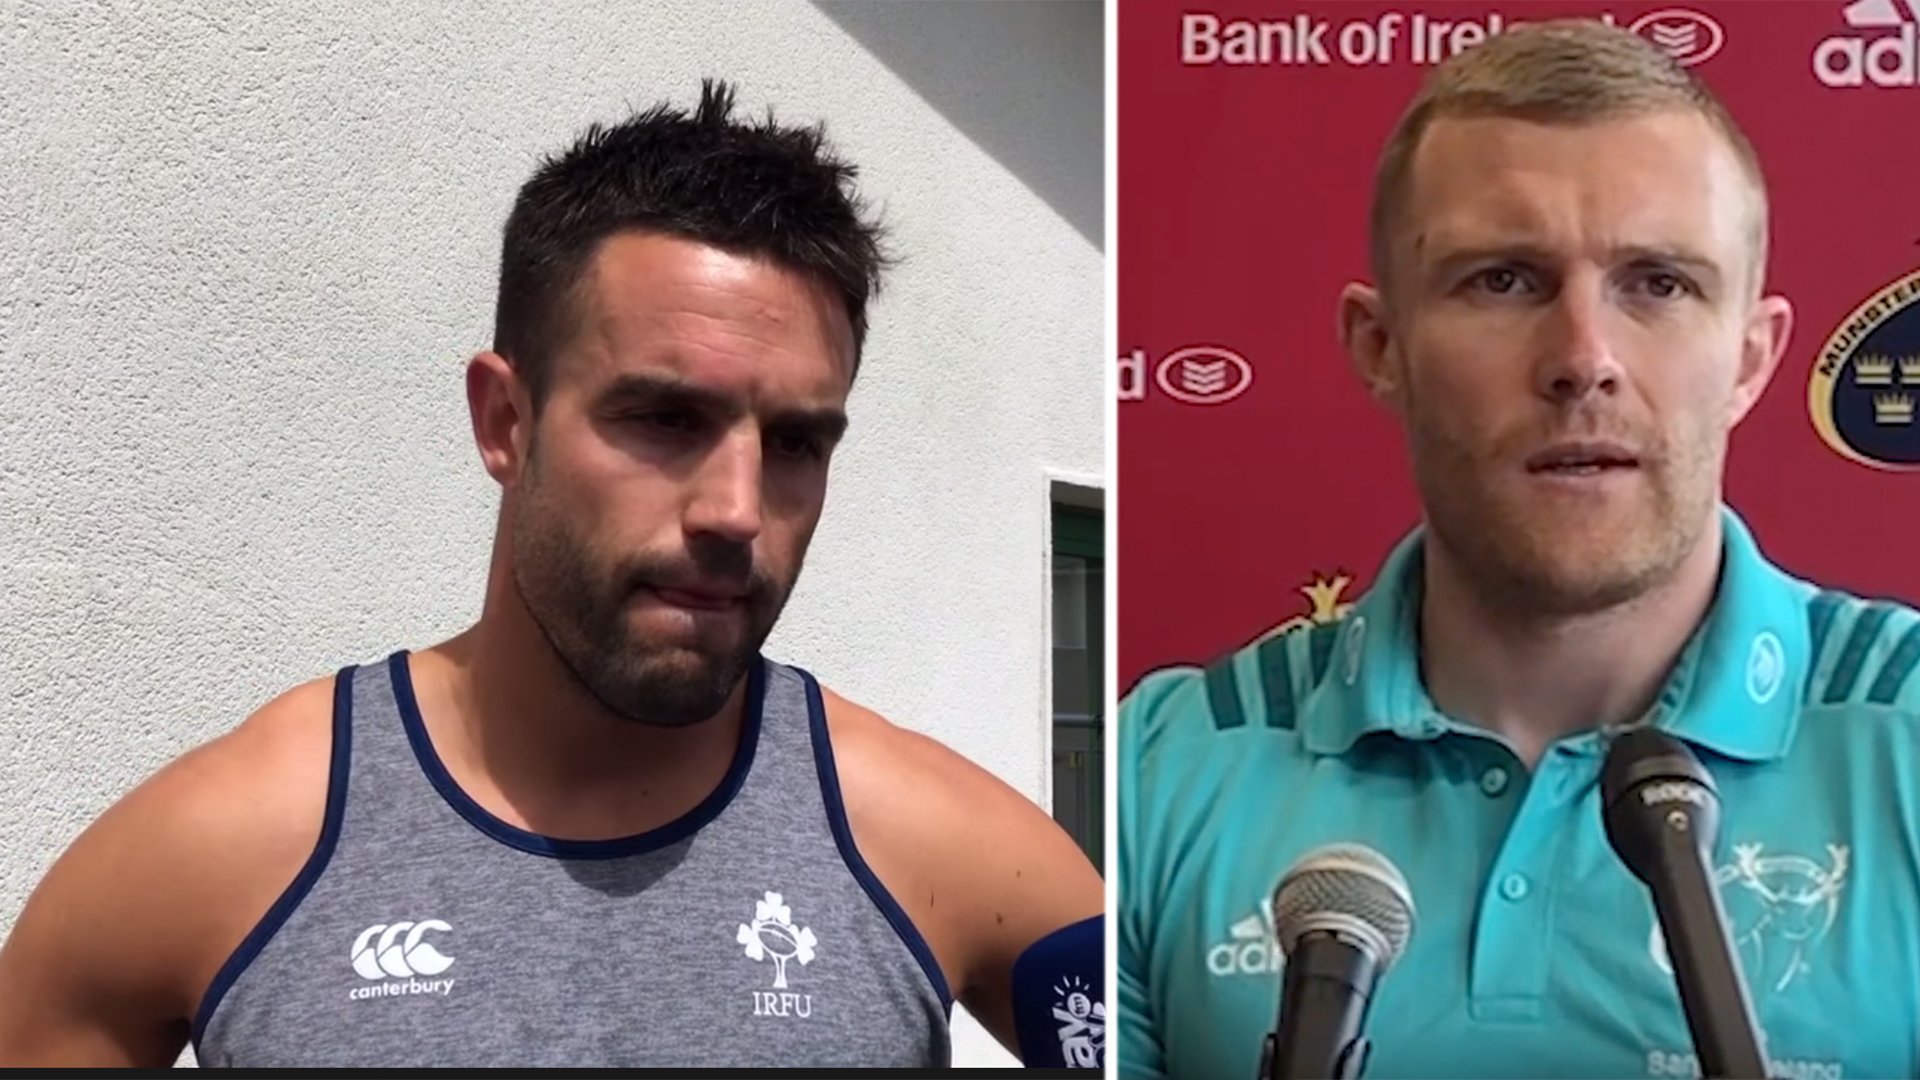 Irish rugby stars emotionally urge public to follow Government advice as crisis worsens